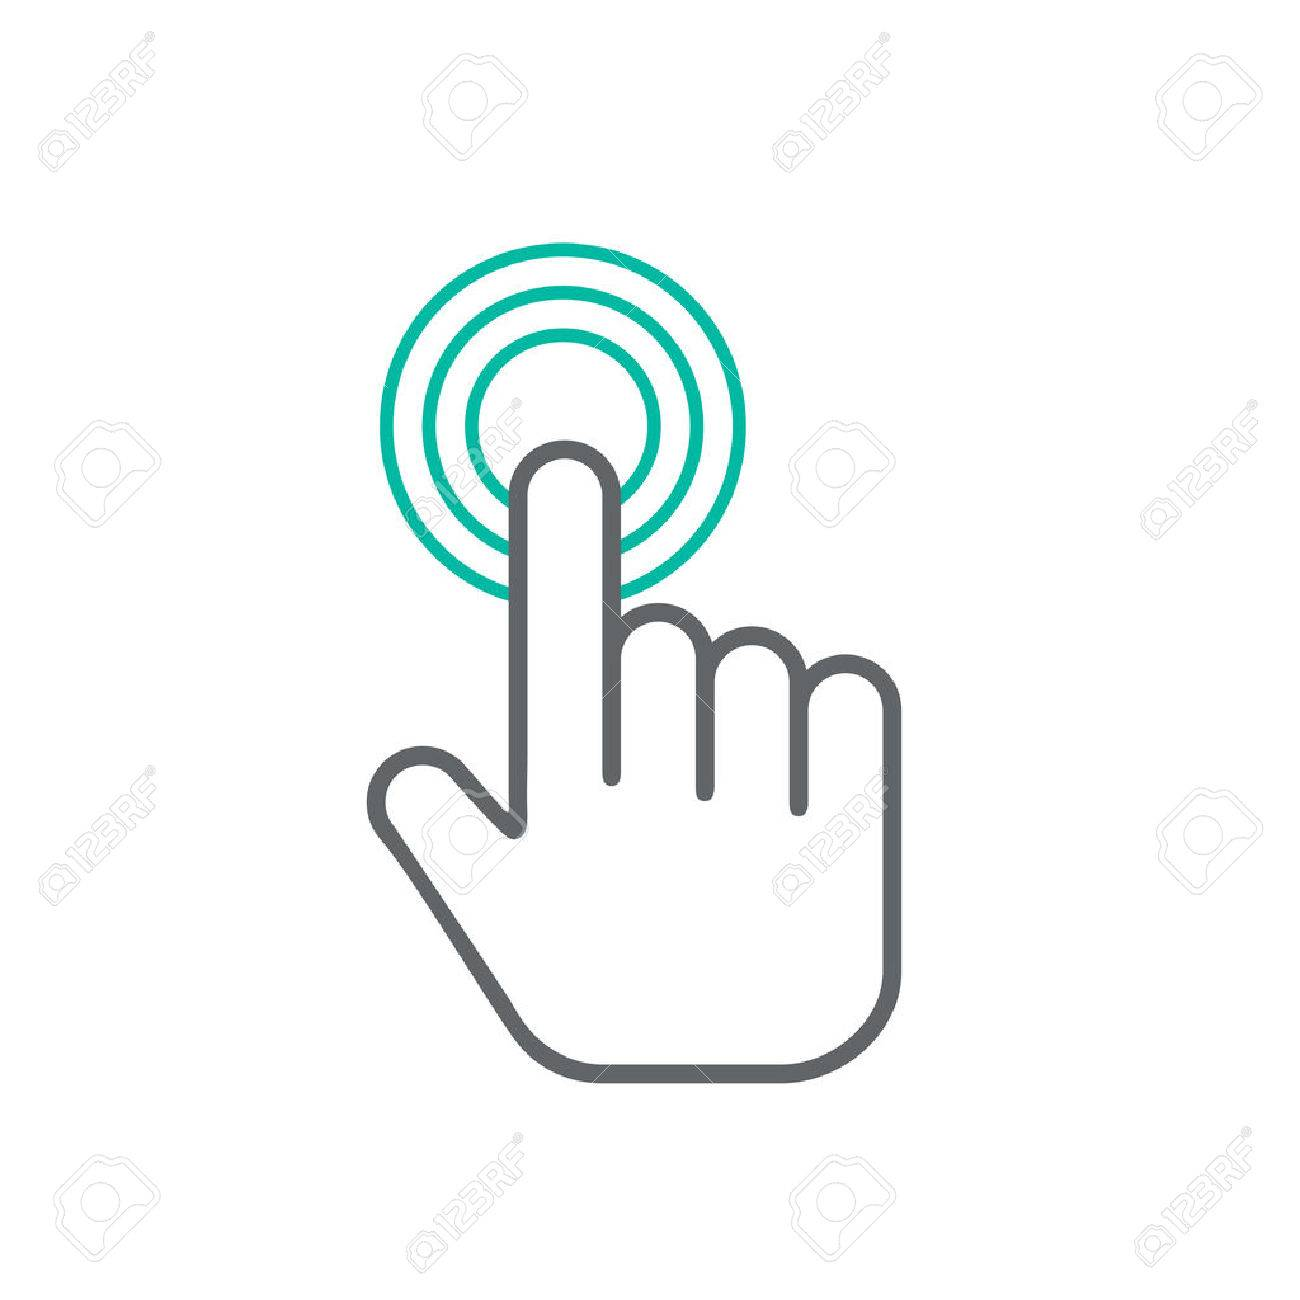 Click hand icon, click hand icon vector, flat click hand icon design. White click hand icon on white background - 53408214